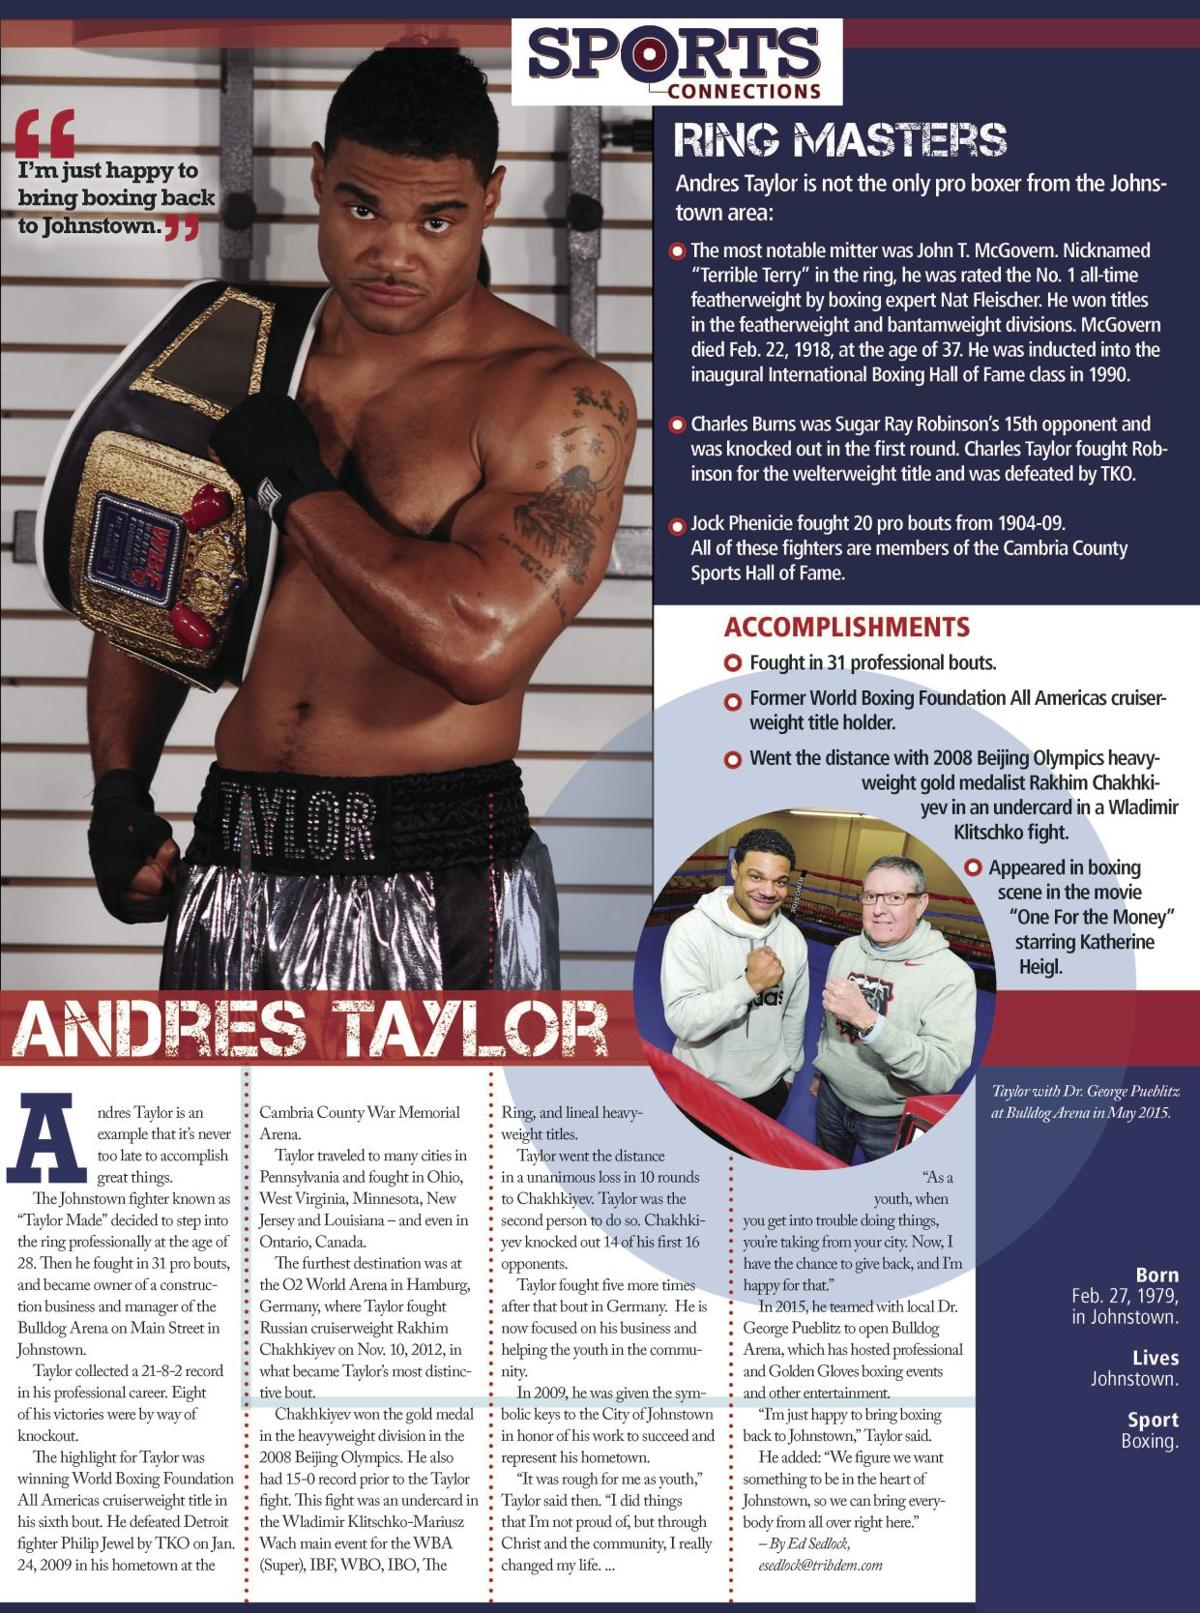 sports connections taylor made revives boxing tradition in andres taylor